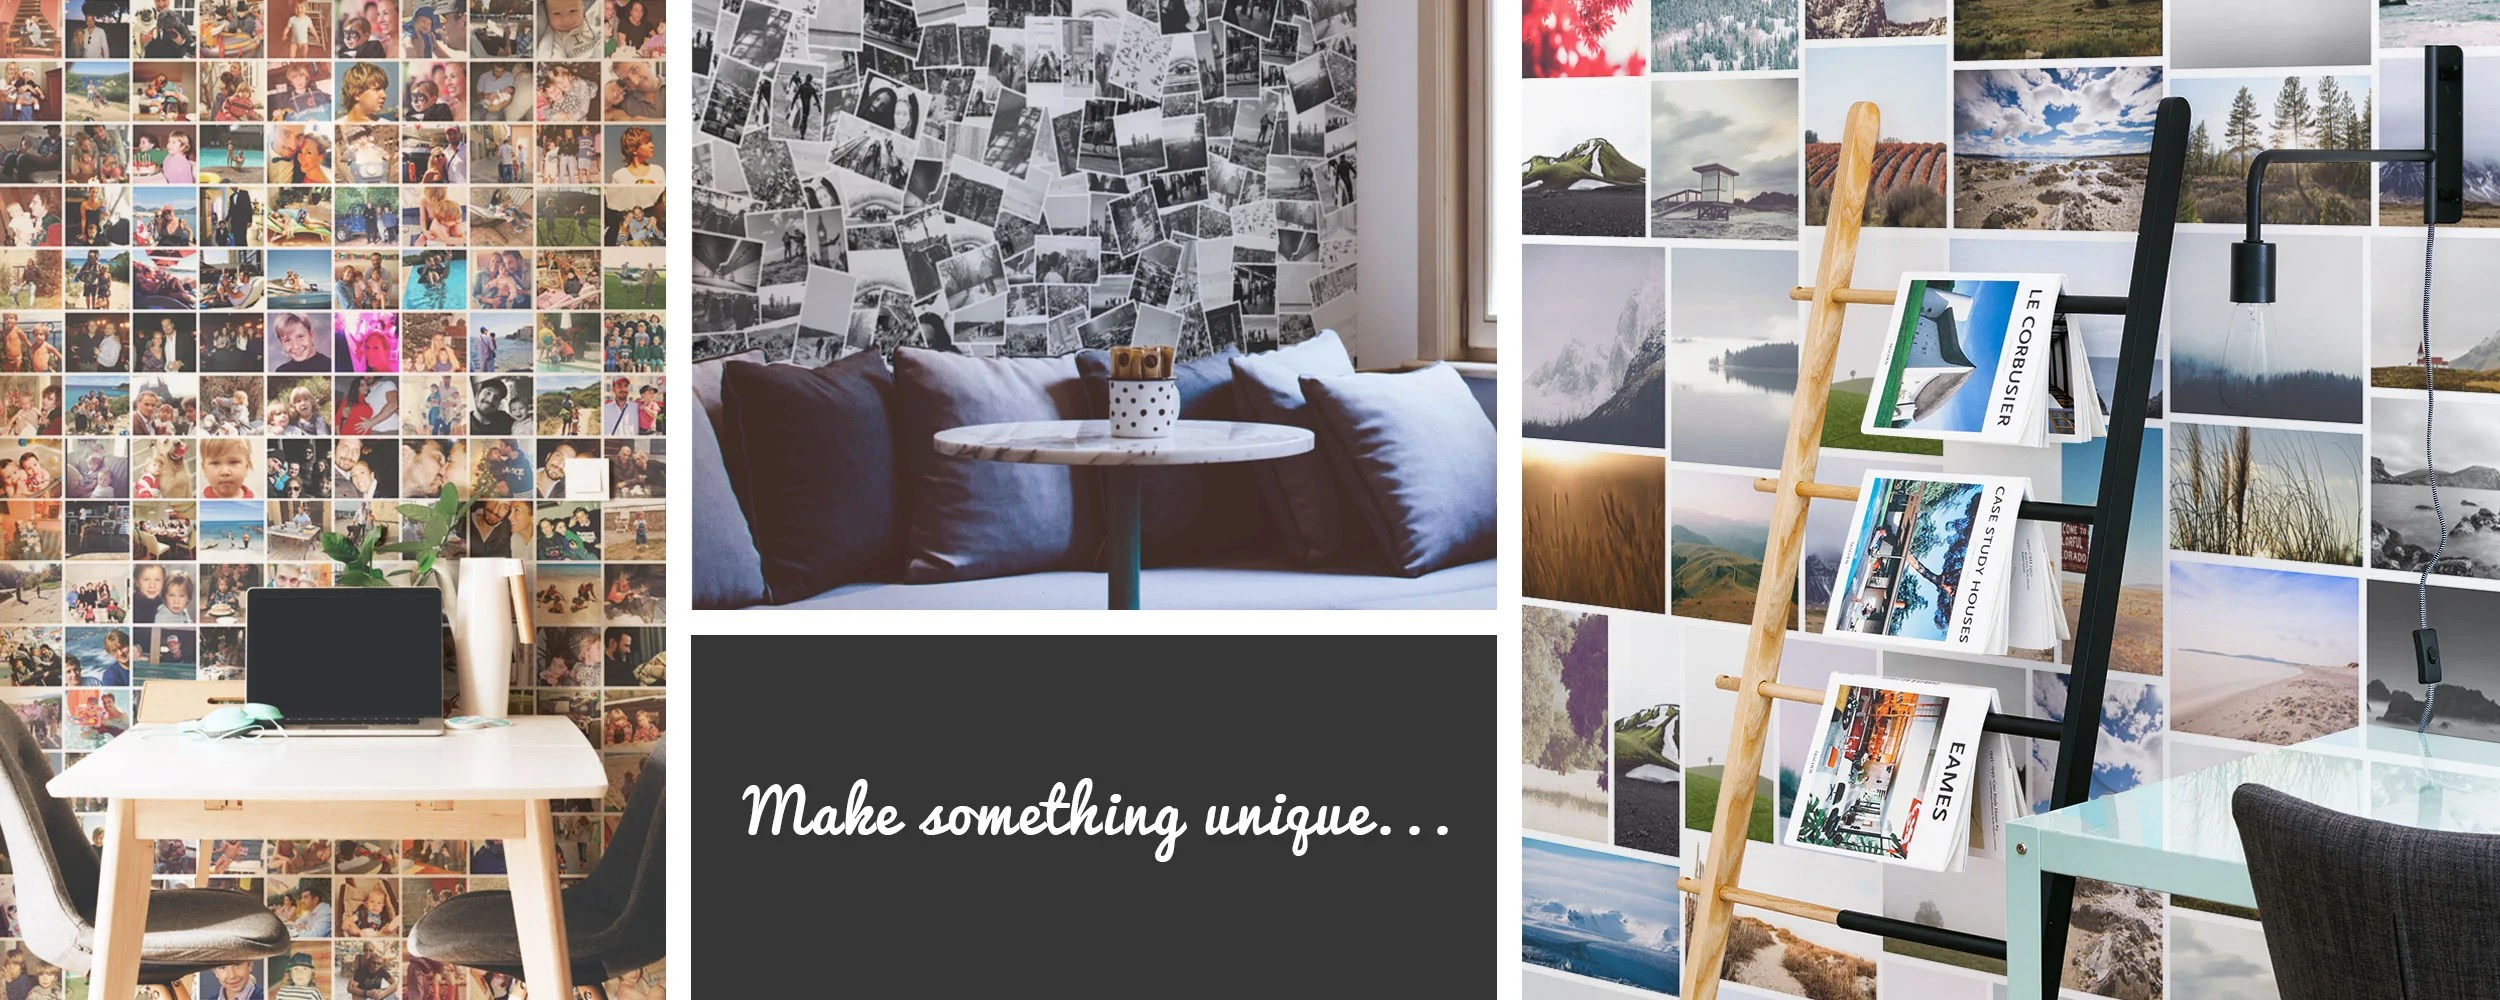 Collage Fotos Create A Collage Mural Custom Wall Murals Eazywallz